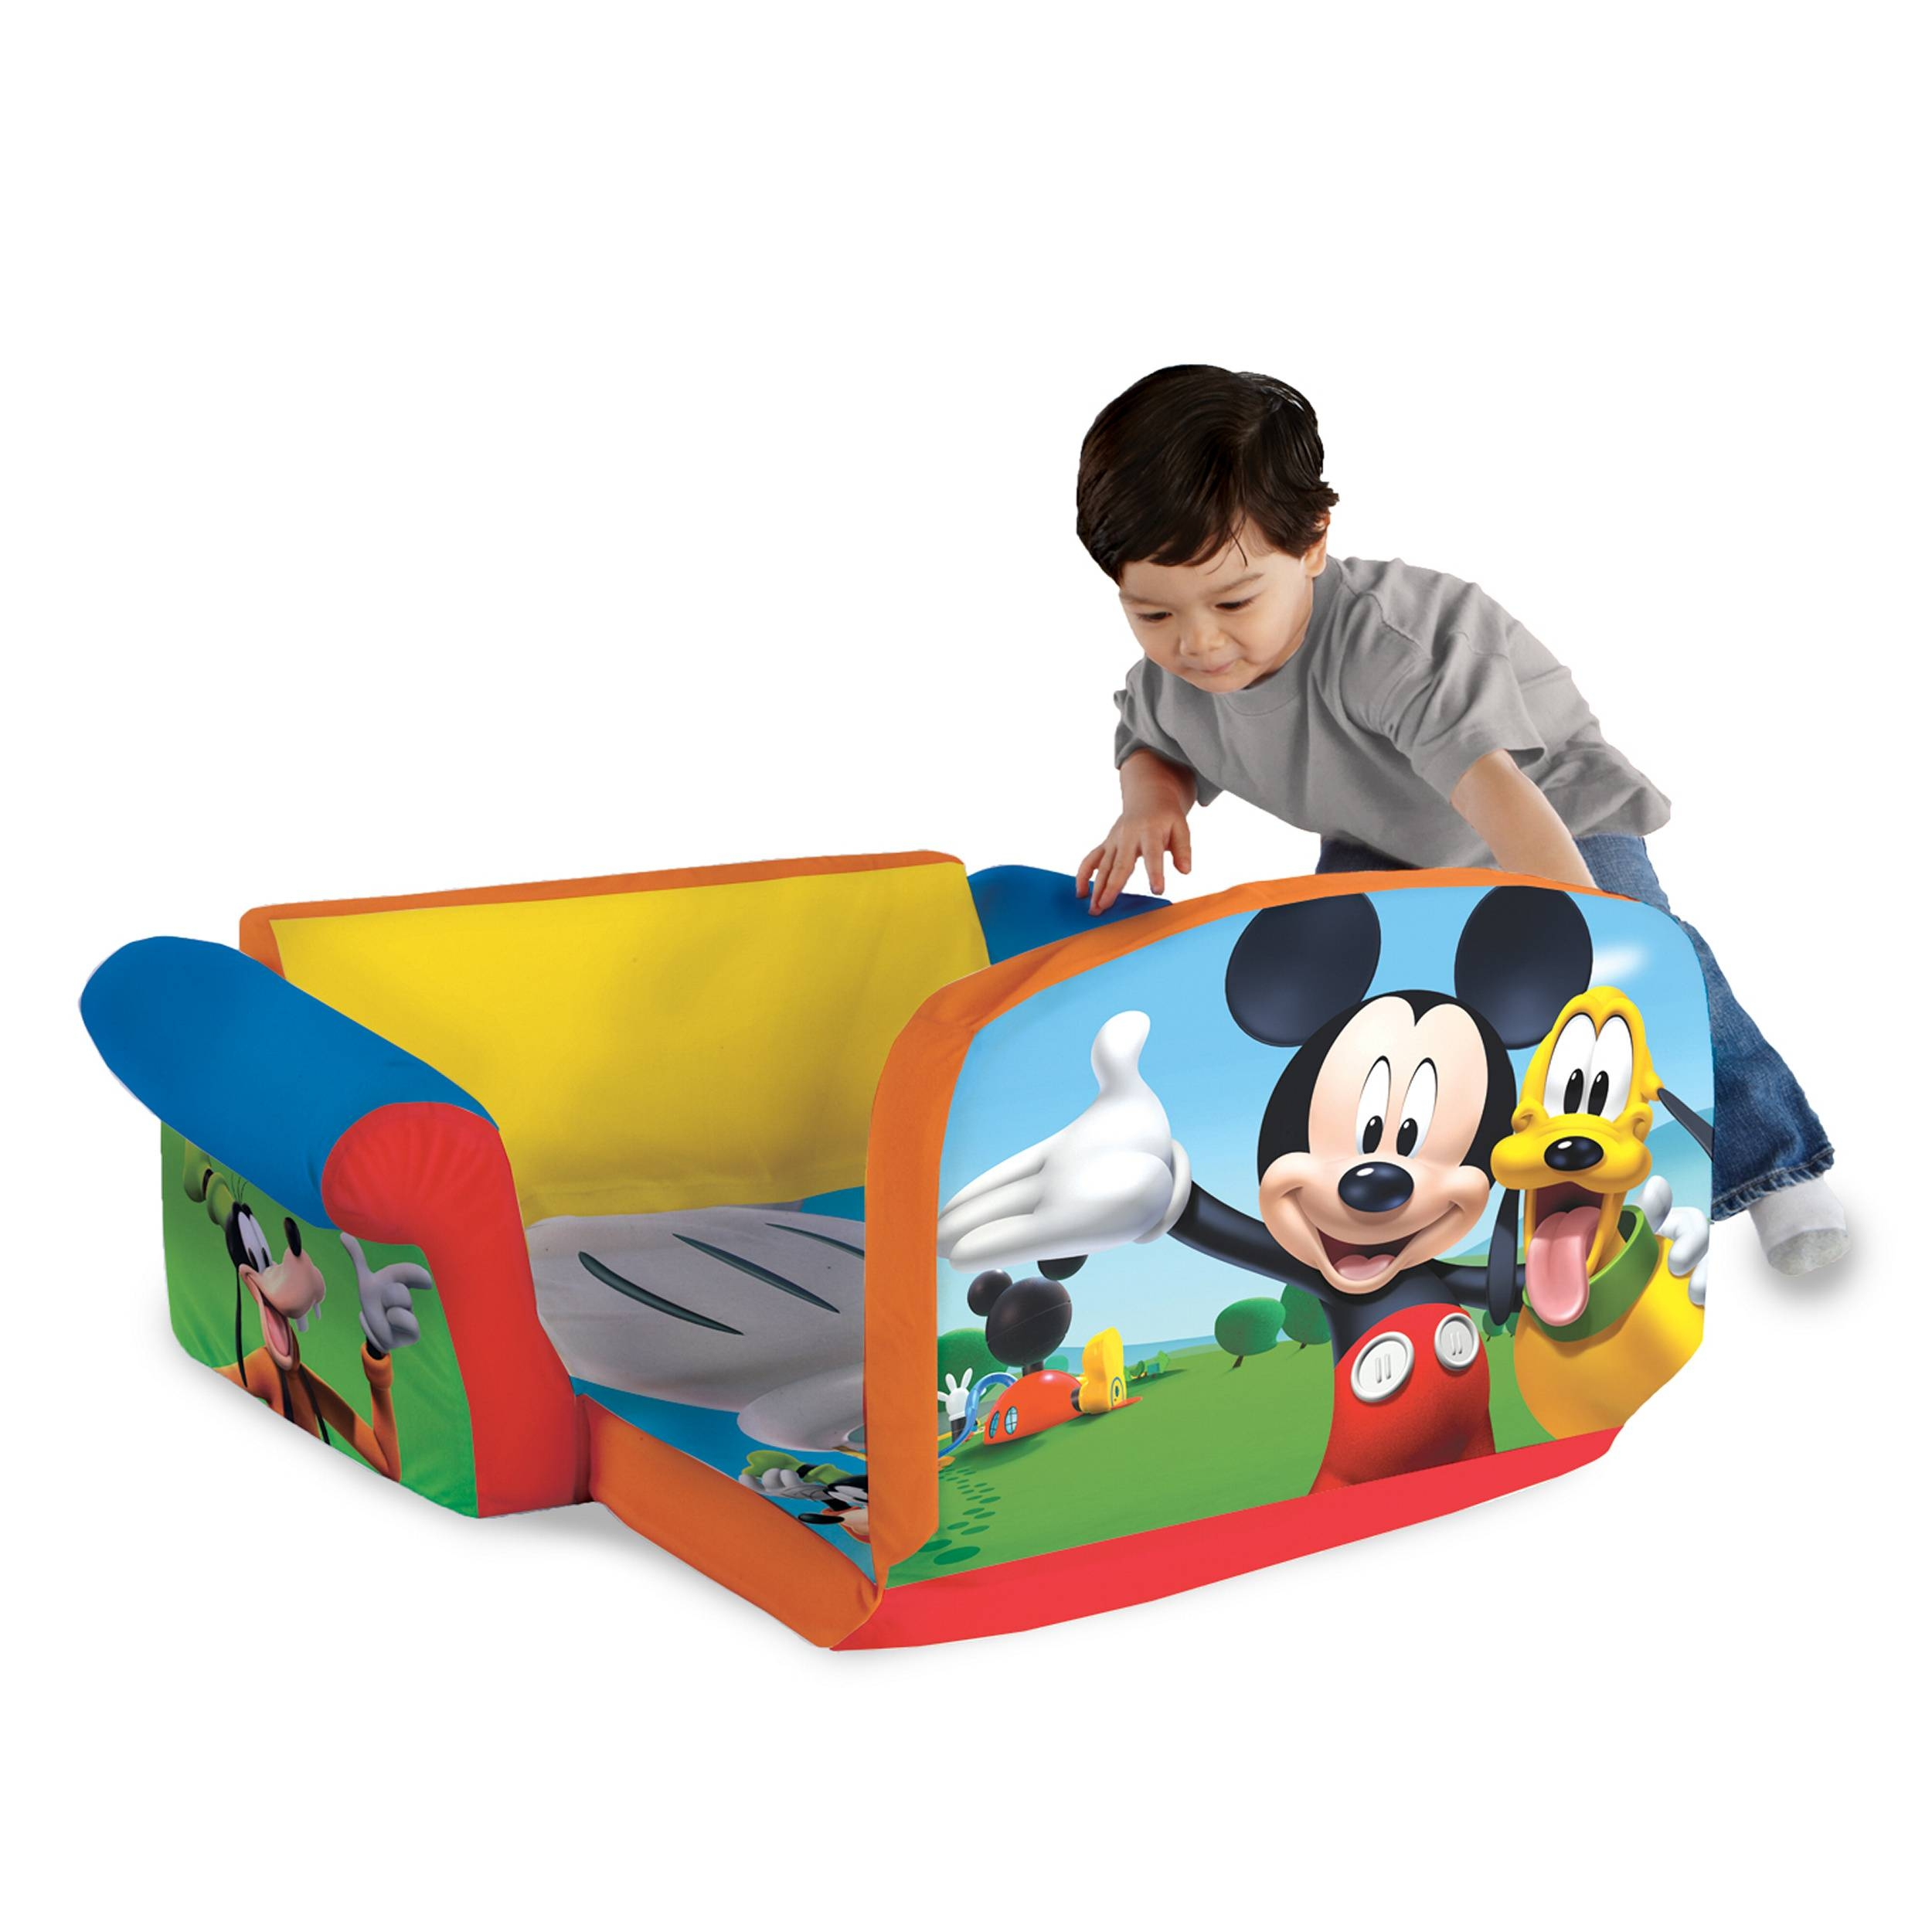 Marshmallow Furniture, Children's 2 In 1 Flip Open Foam Sofa with regard to Mickey Mouse Clubhouse Couches (Image 6 of 15)